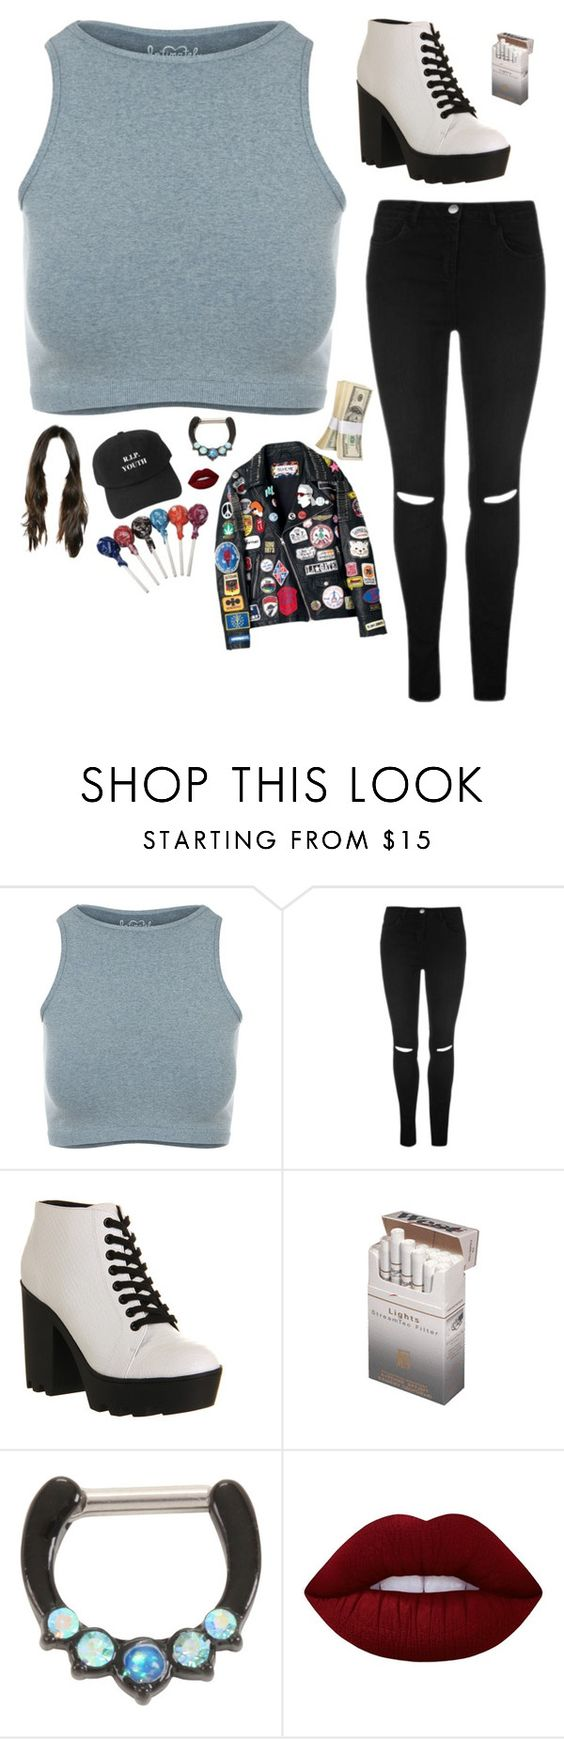 """""""Untitled #647"""" by lame-spacemilk ❤ liked on Polyvore featuring Free People, Office and Lime Crime"""